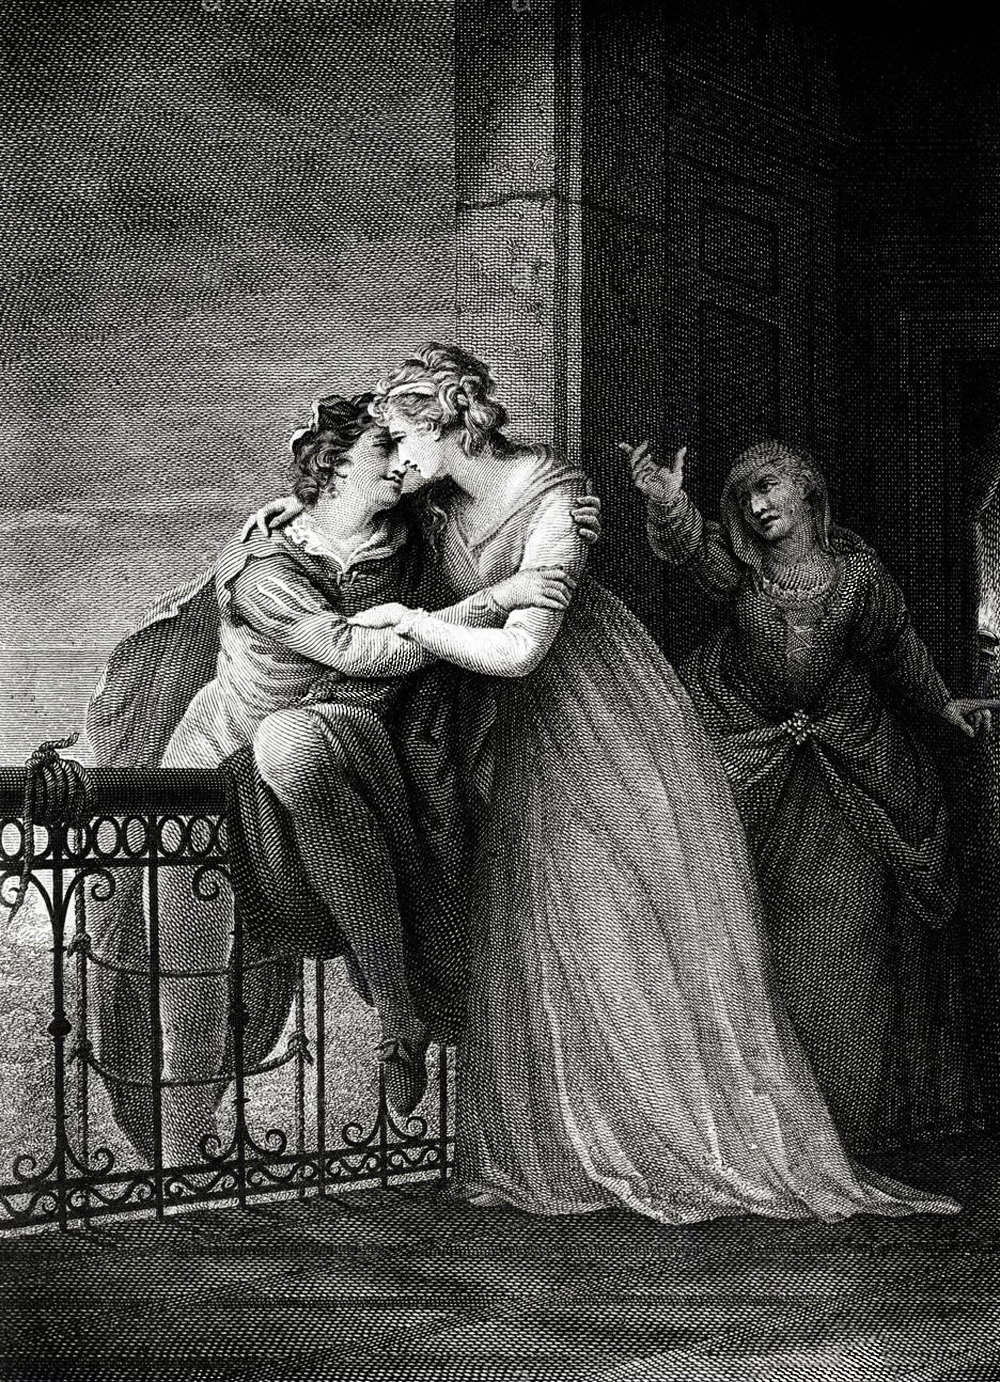 the control of two teenagers by a chain of human actions in shakespeares romeo and juliet Romeo and juliet key scene essay, shakespeares play about the doomed romance of two teenagers from feuding families is the most famous love story ever written.